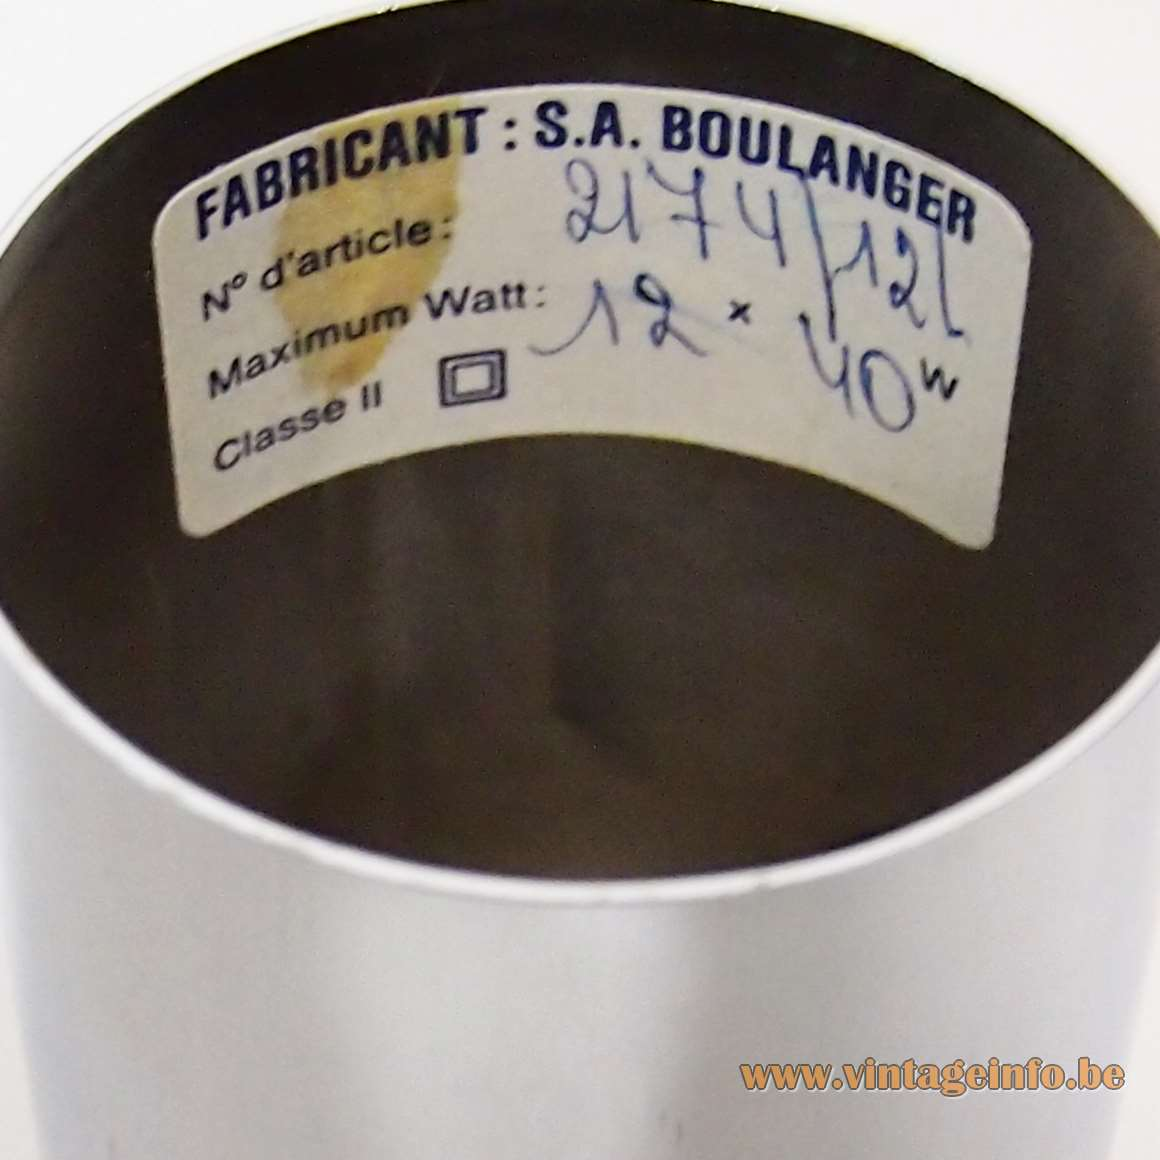 S.A. Boulanger Label